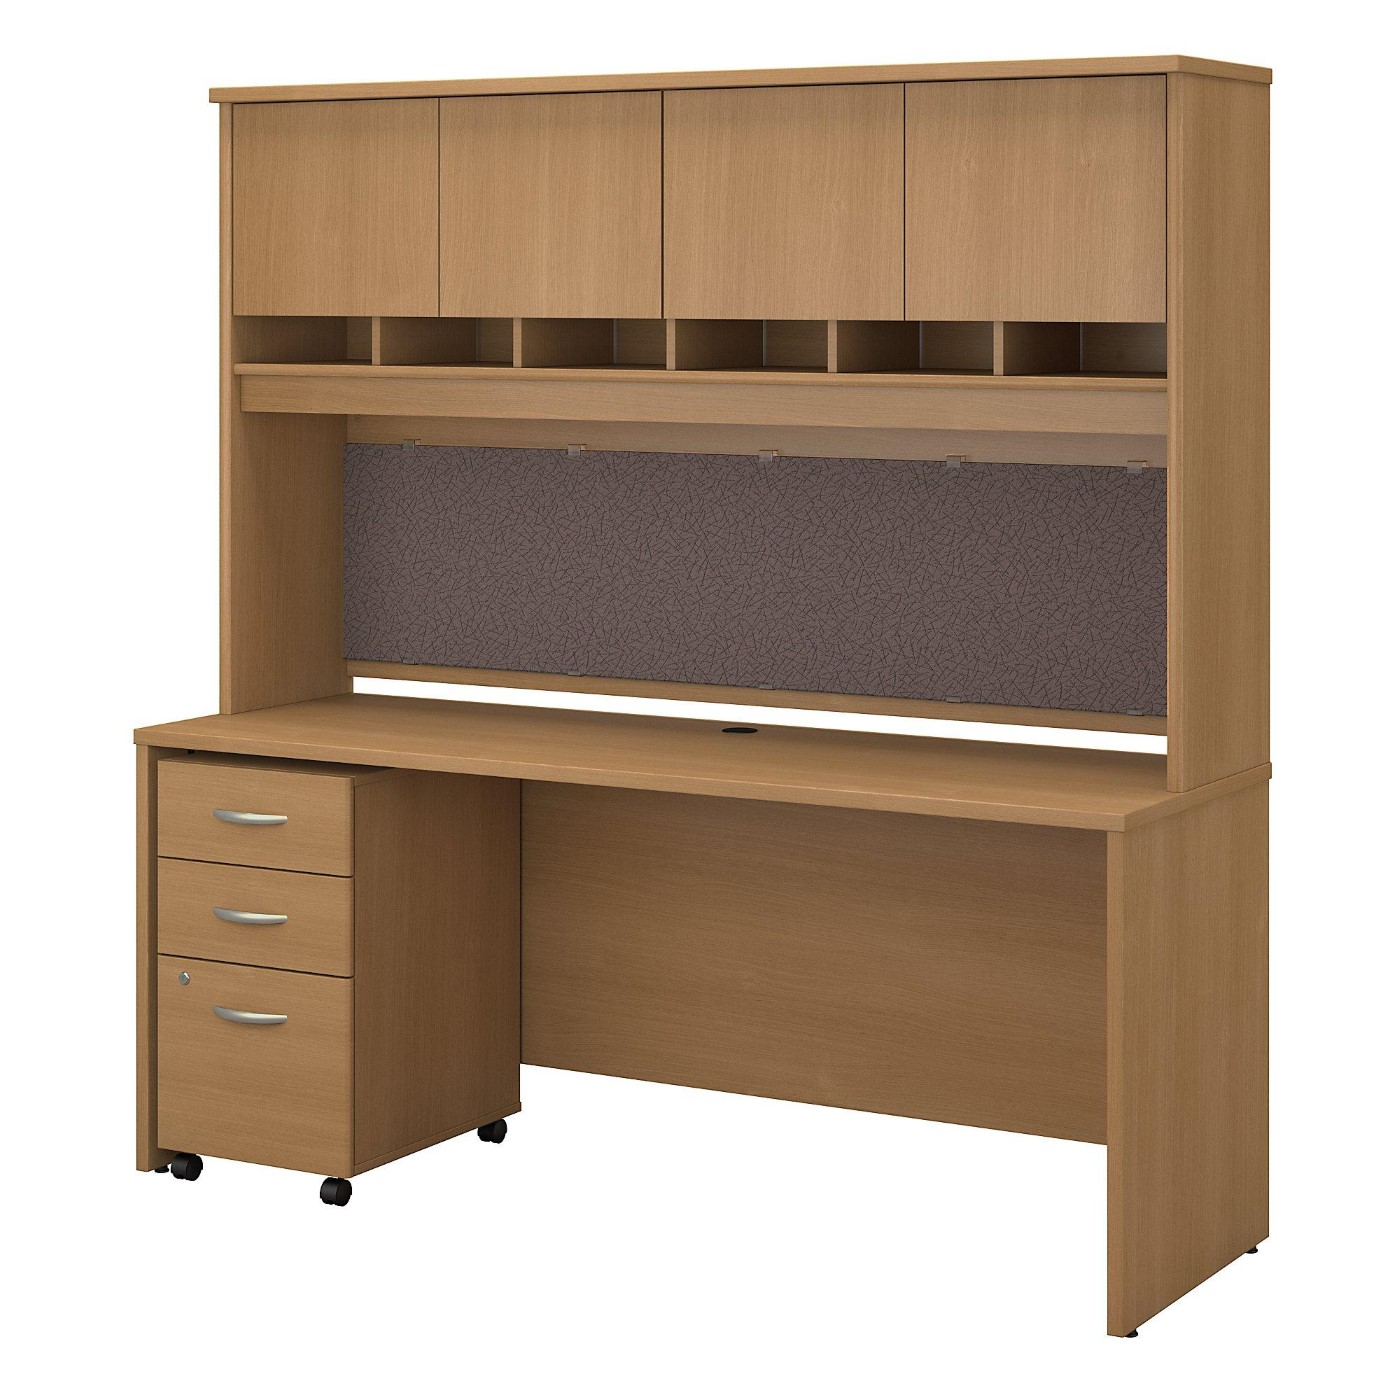 BUSH BUSINESS FURNITURE SERIES C 72W X 24D OFFICE DESK WITH HUTCH AND MOBILE FILE CABINET. FREE SHIPPING  VIDEO BELOW.